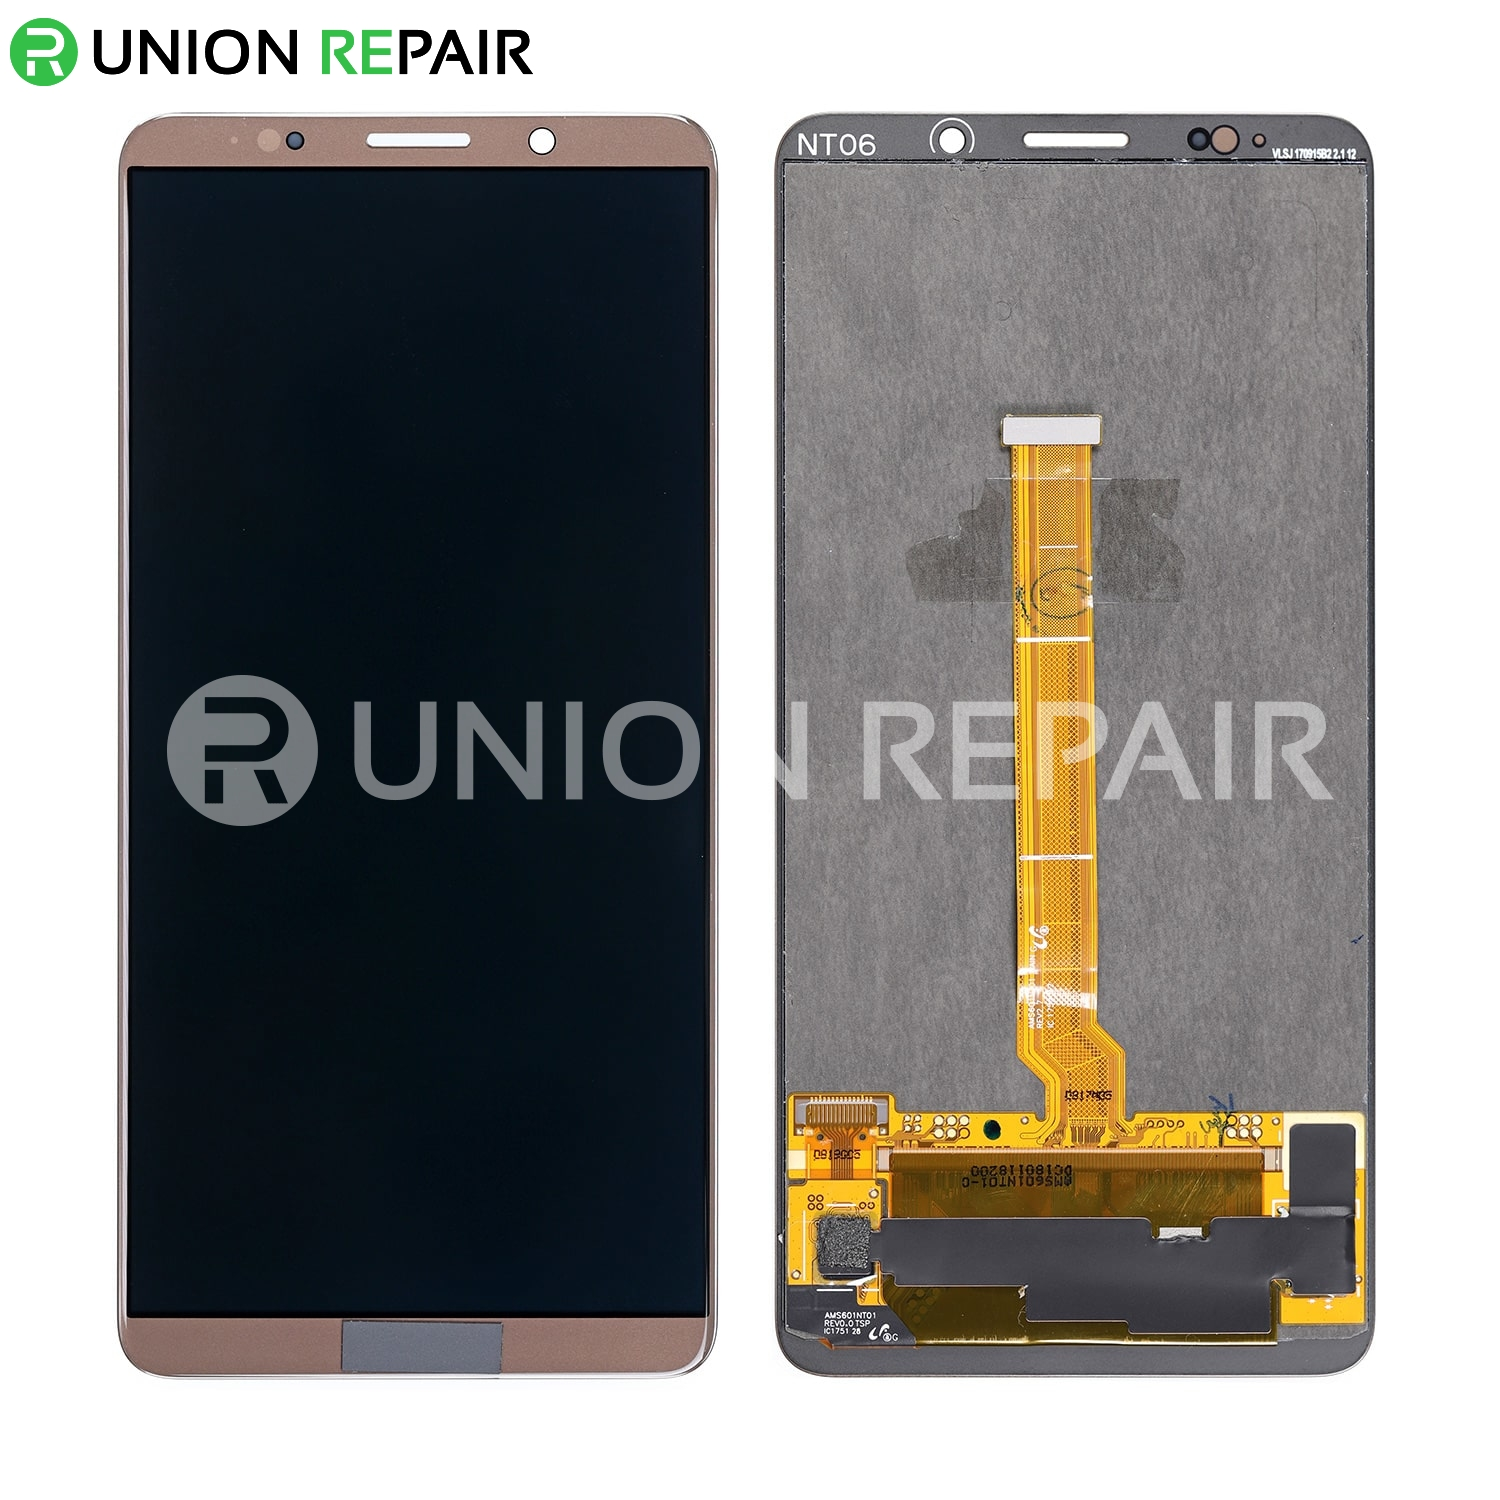 Replacement For Huawei Mate 10 Pro Lcd Screen Digitizer Assembly Mocha Brown